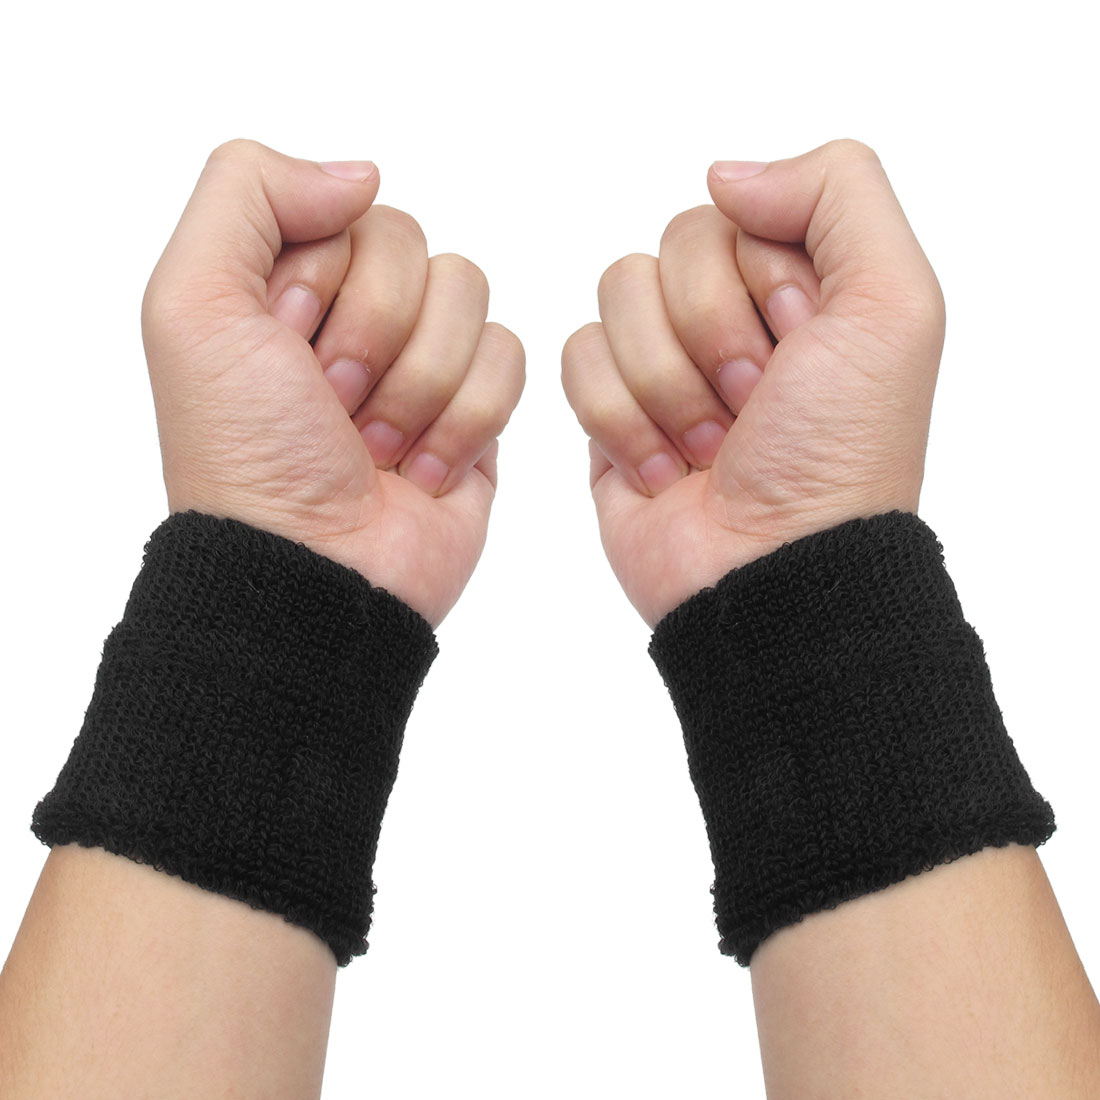 2 Pcs Black Terry Elastic Fabric Sports Wrist Protective Band